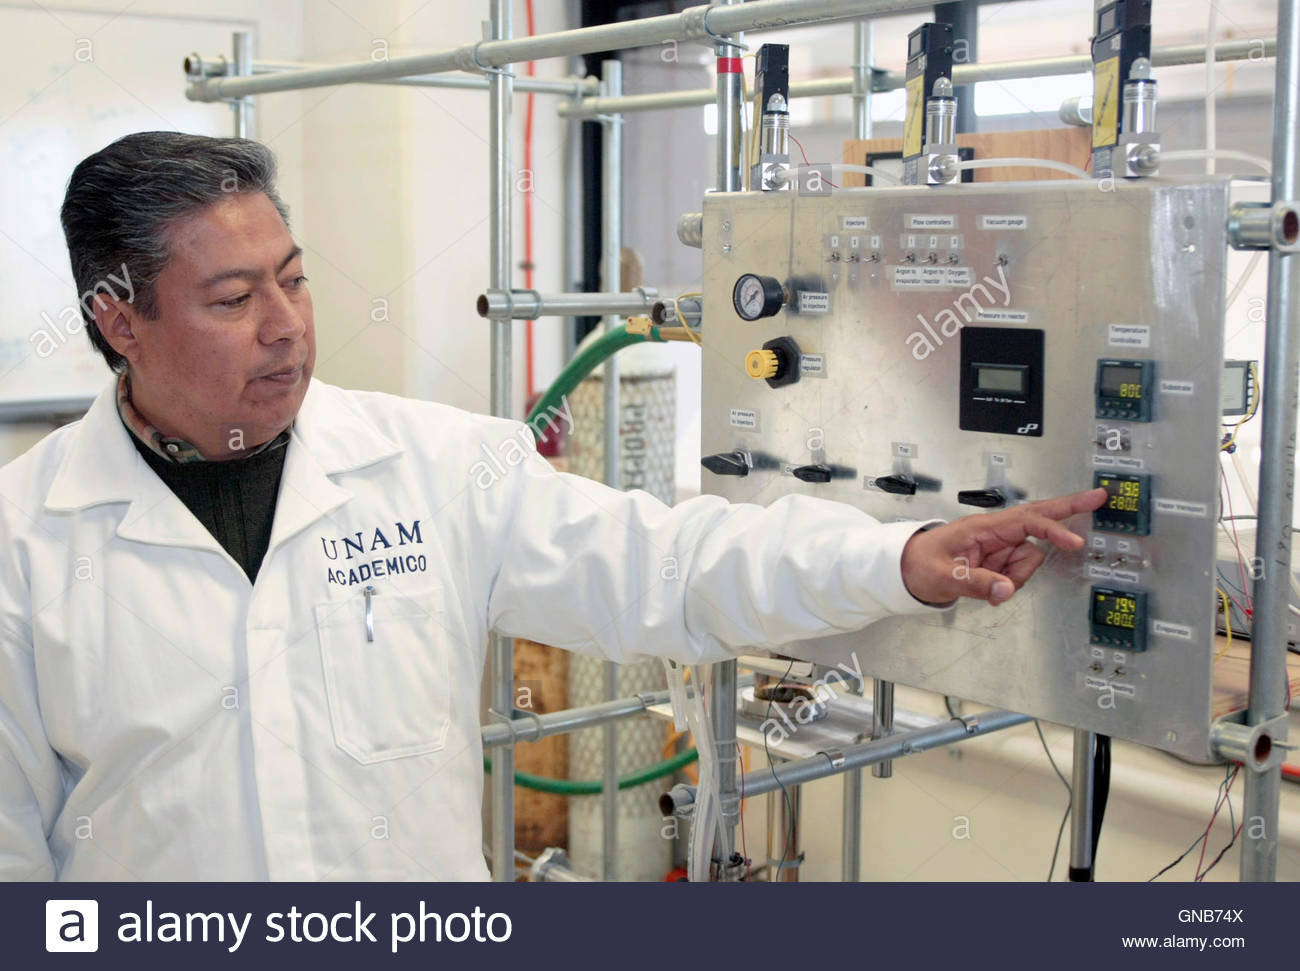 luis miguel apatiga a doctor in engineering of materials luis miguel apatiga a doctor in engineering of materials introduces his equipment during an interview reuters television at the national autonomous